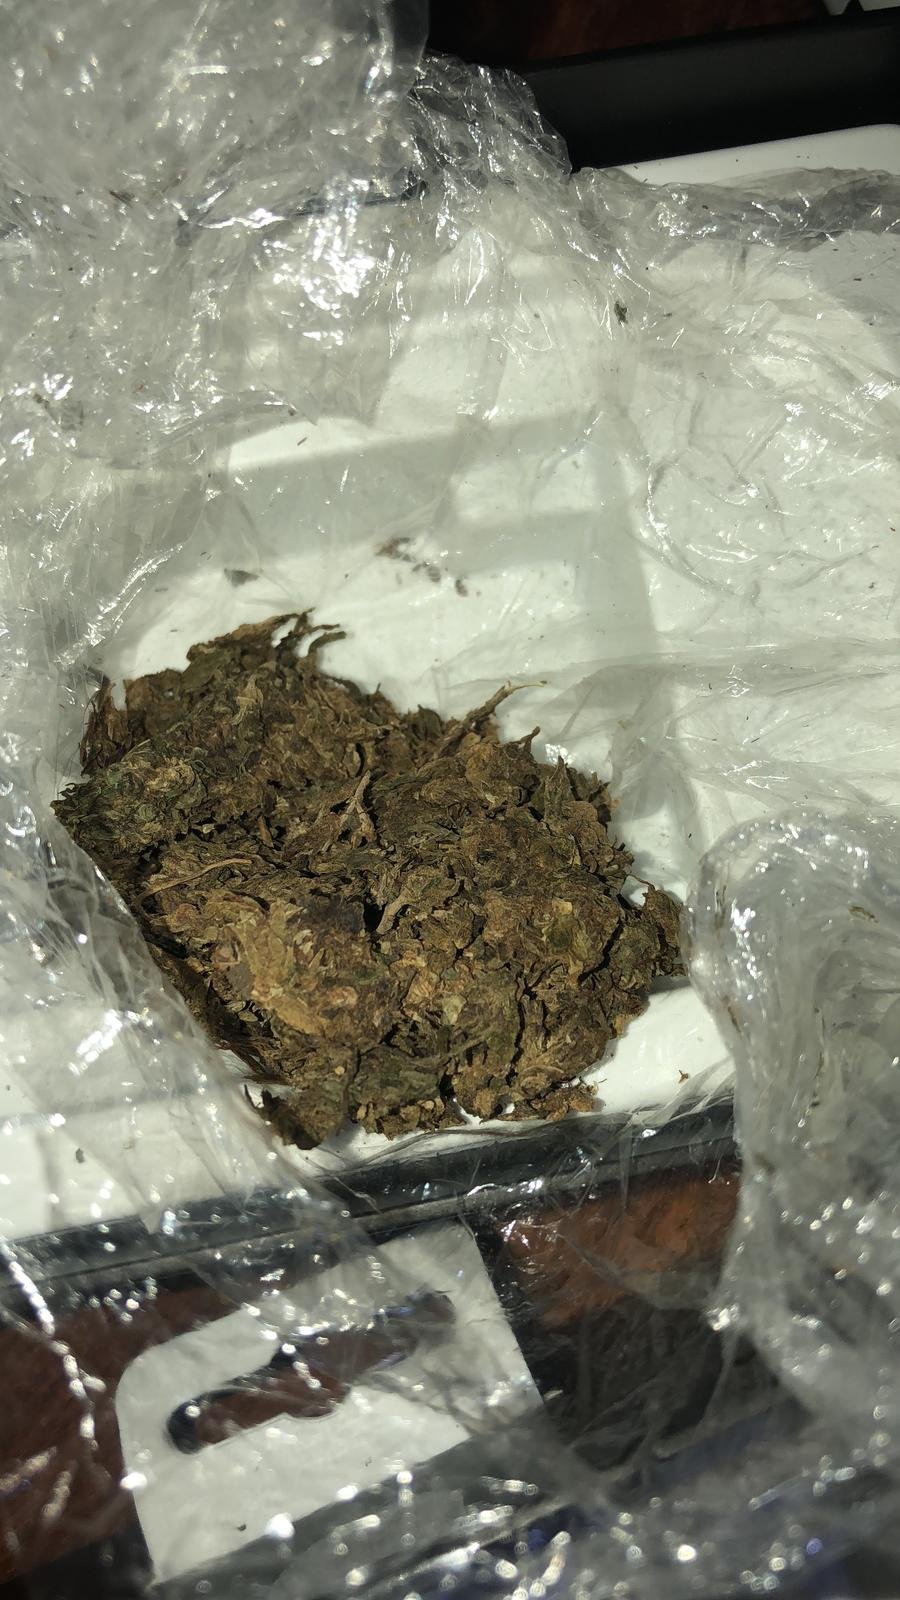 Drugs seized in CNB Operation from 26 Feb to 2 Mar